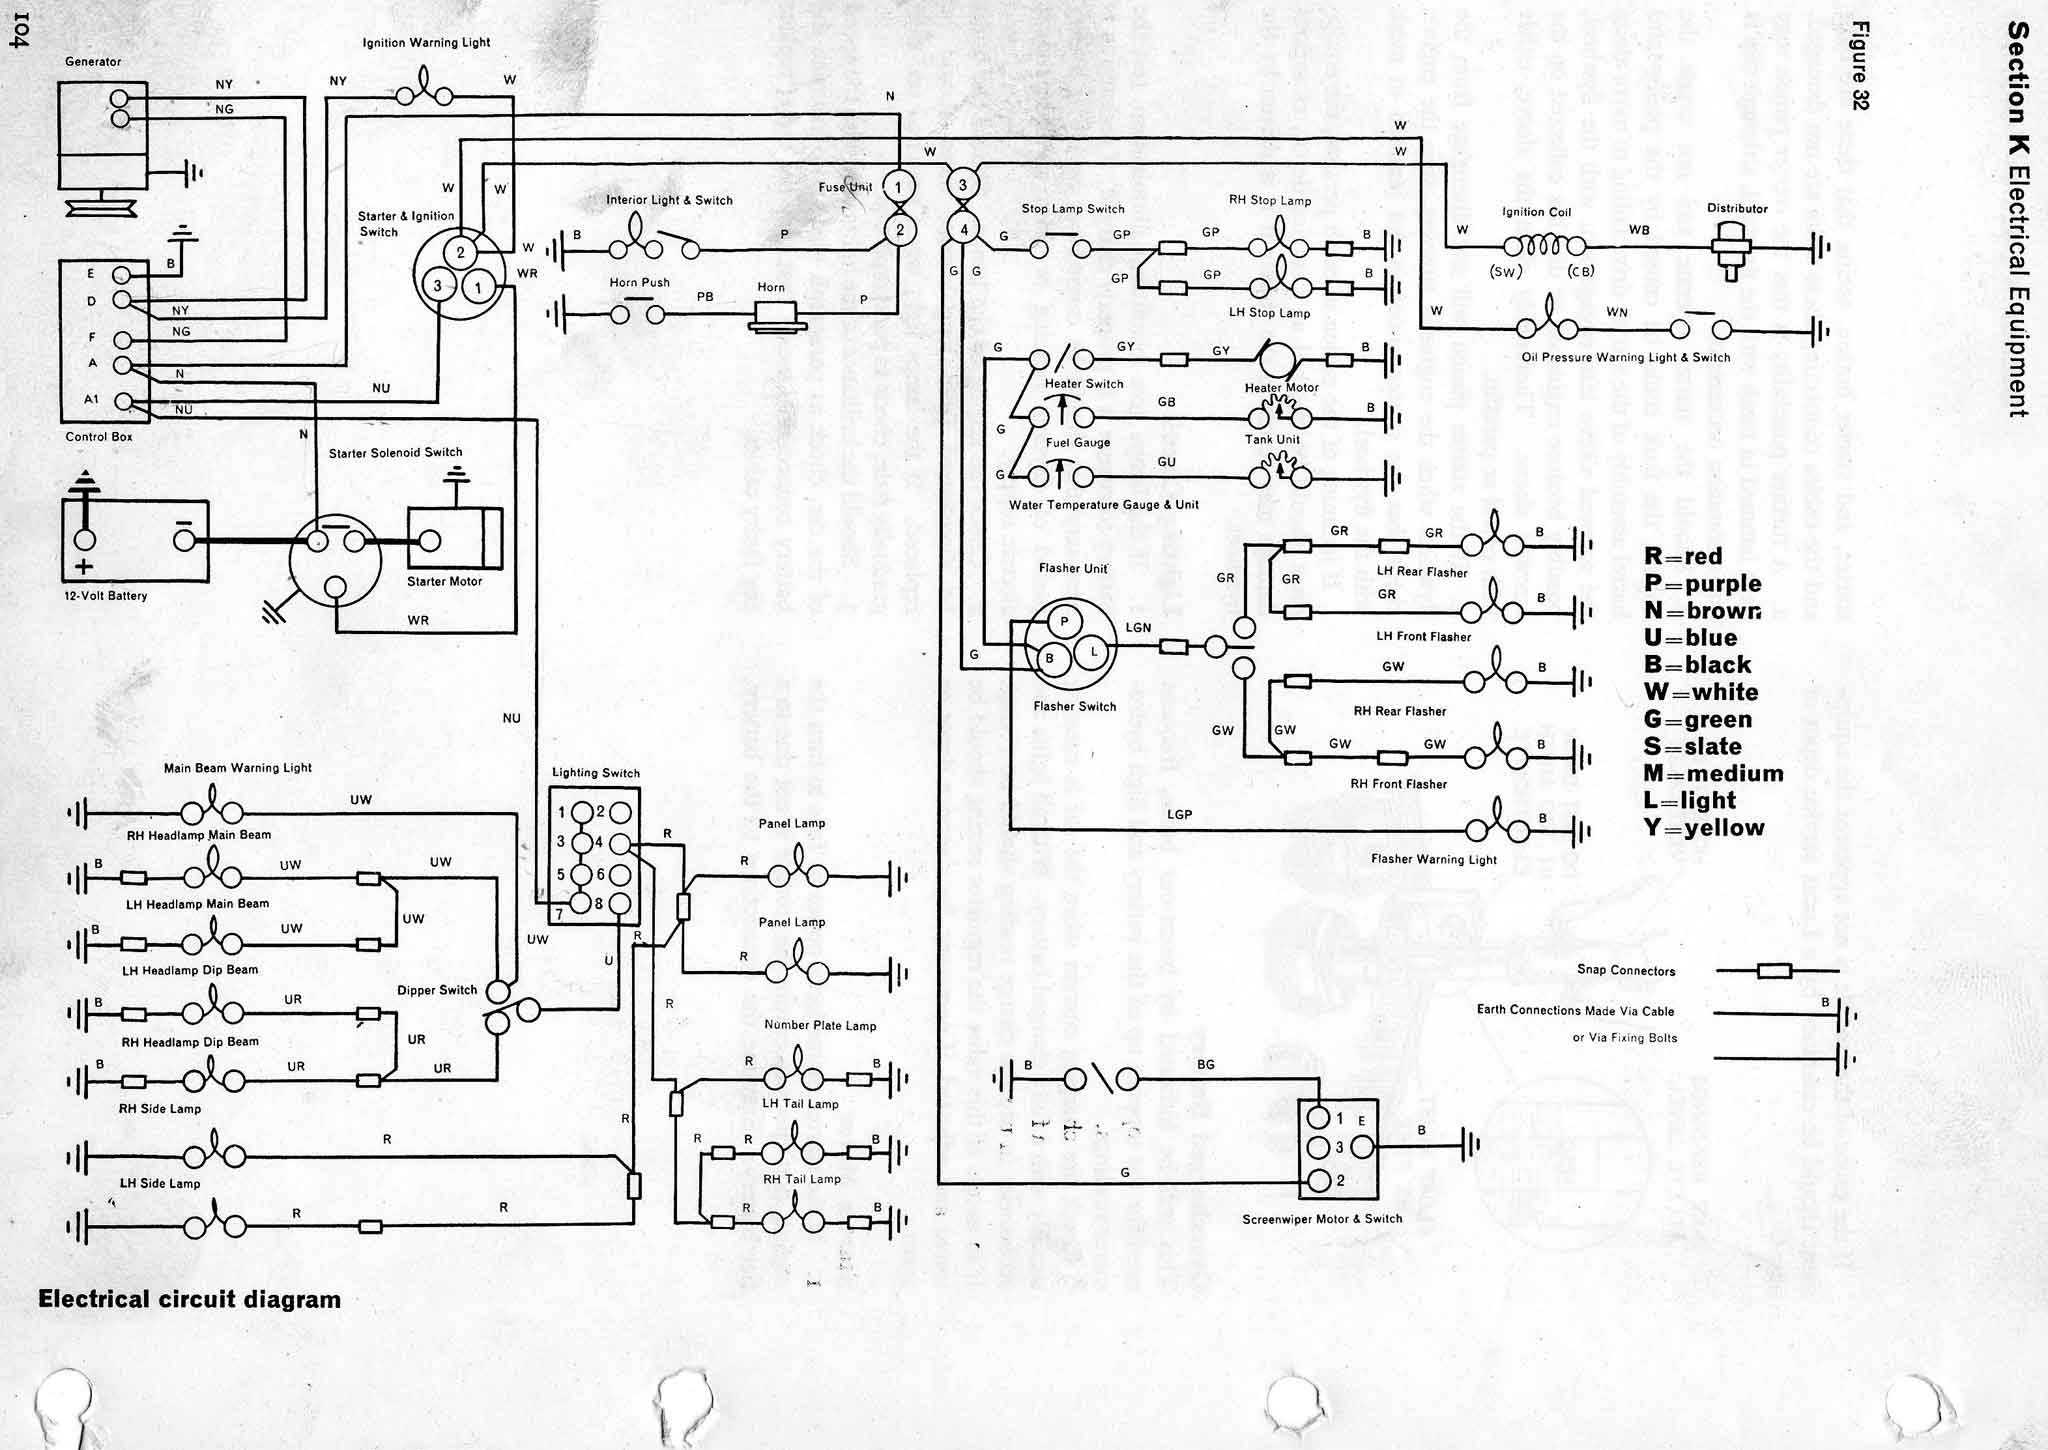 Regal Wiring Diagram Archive Of Automotive Diagrams For Buick Reliant Spares Rh Reliantspares Com 1985 2000